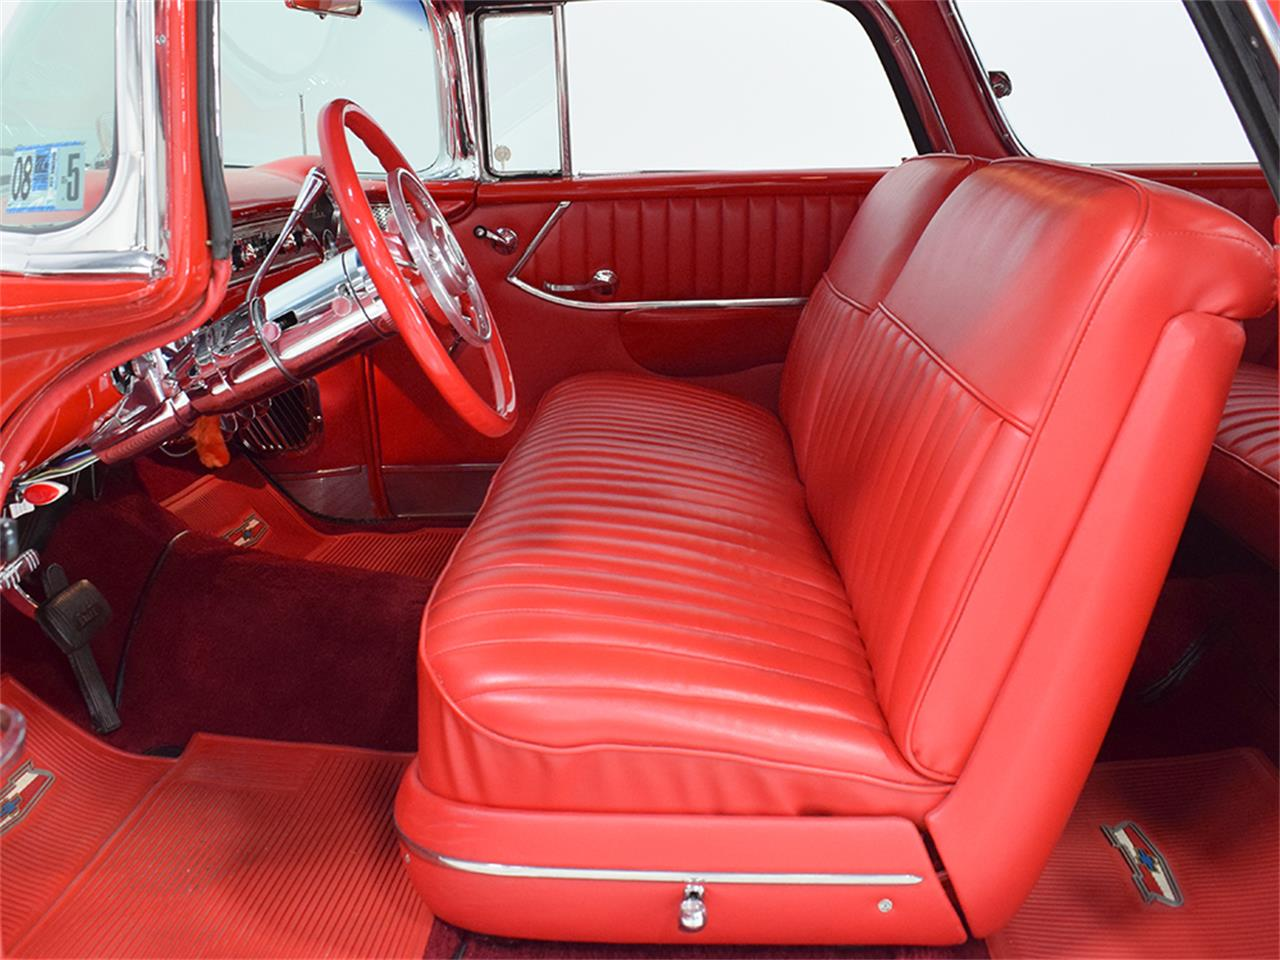 Large Picture of 1955 Chevrolet Nomad located in Ohio Offered by Harwood Motors, LTD. - O8YP